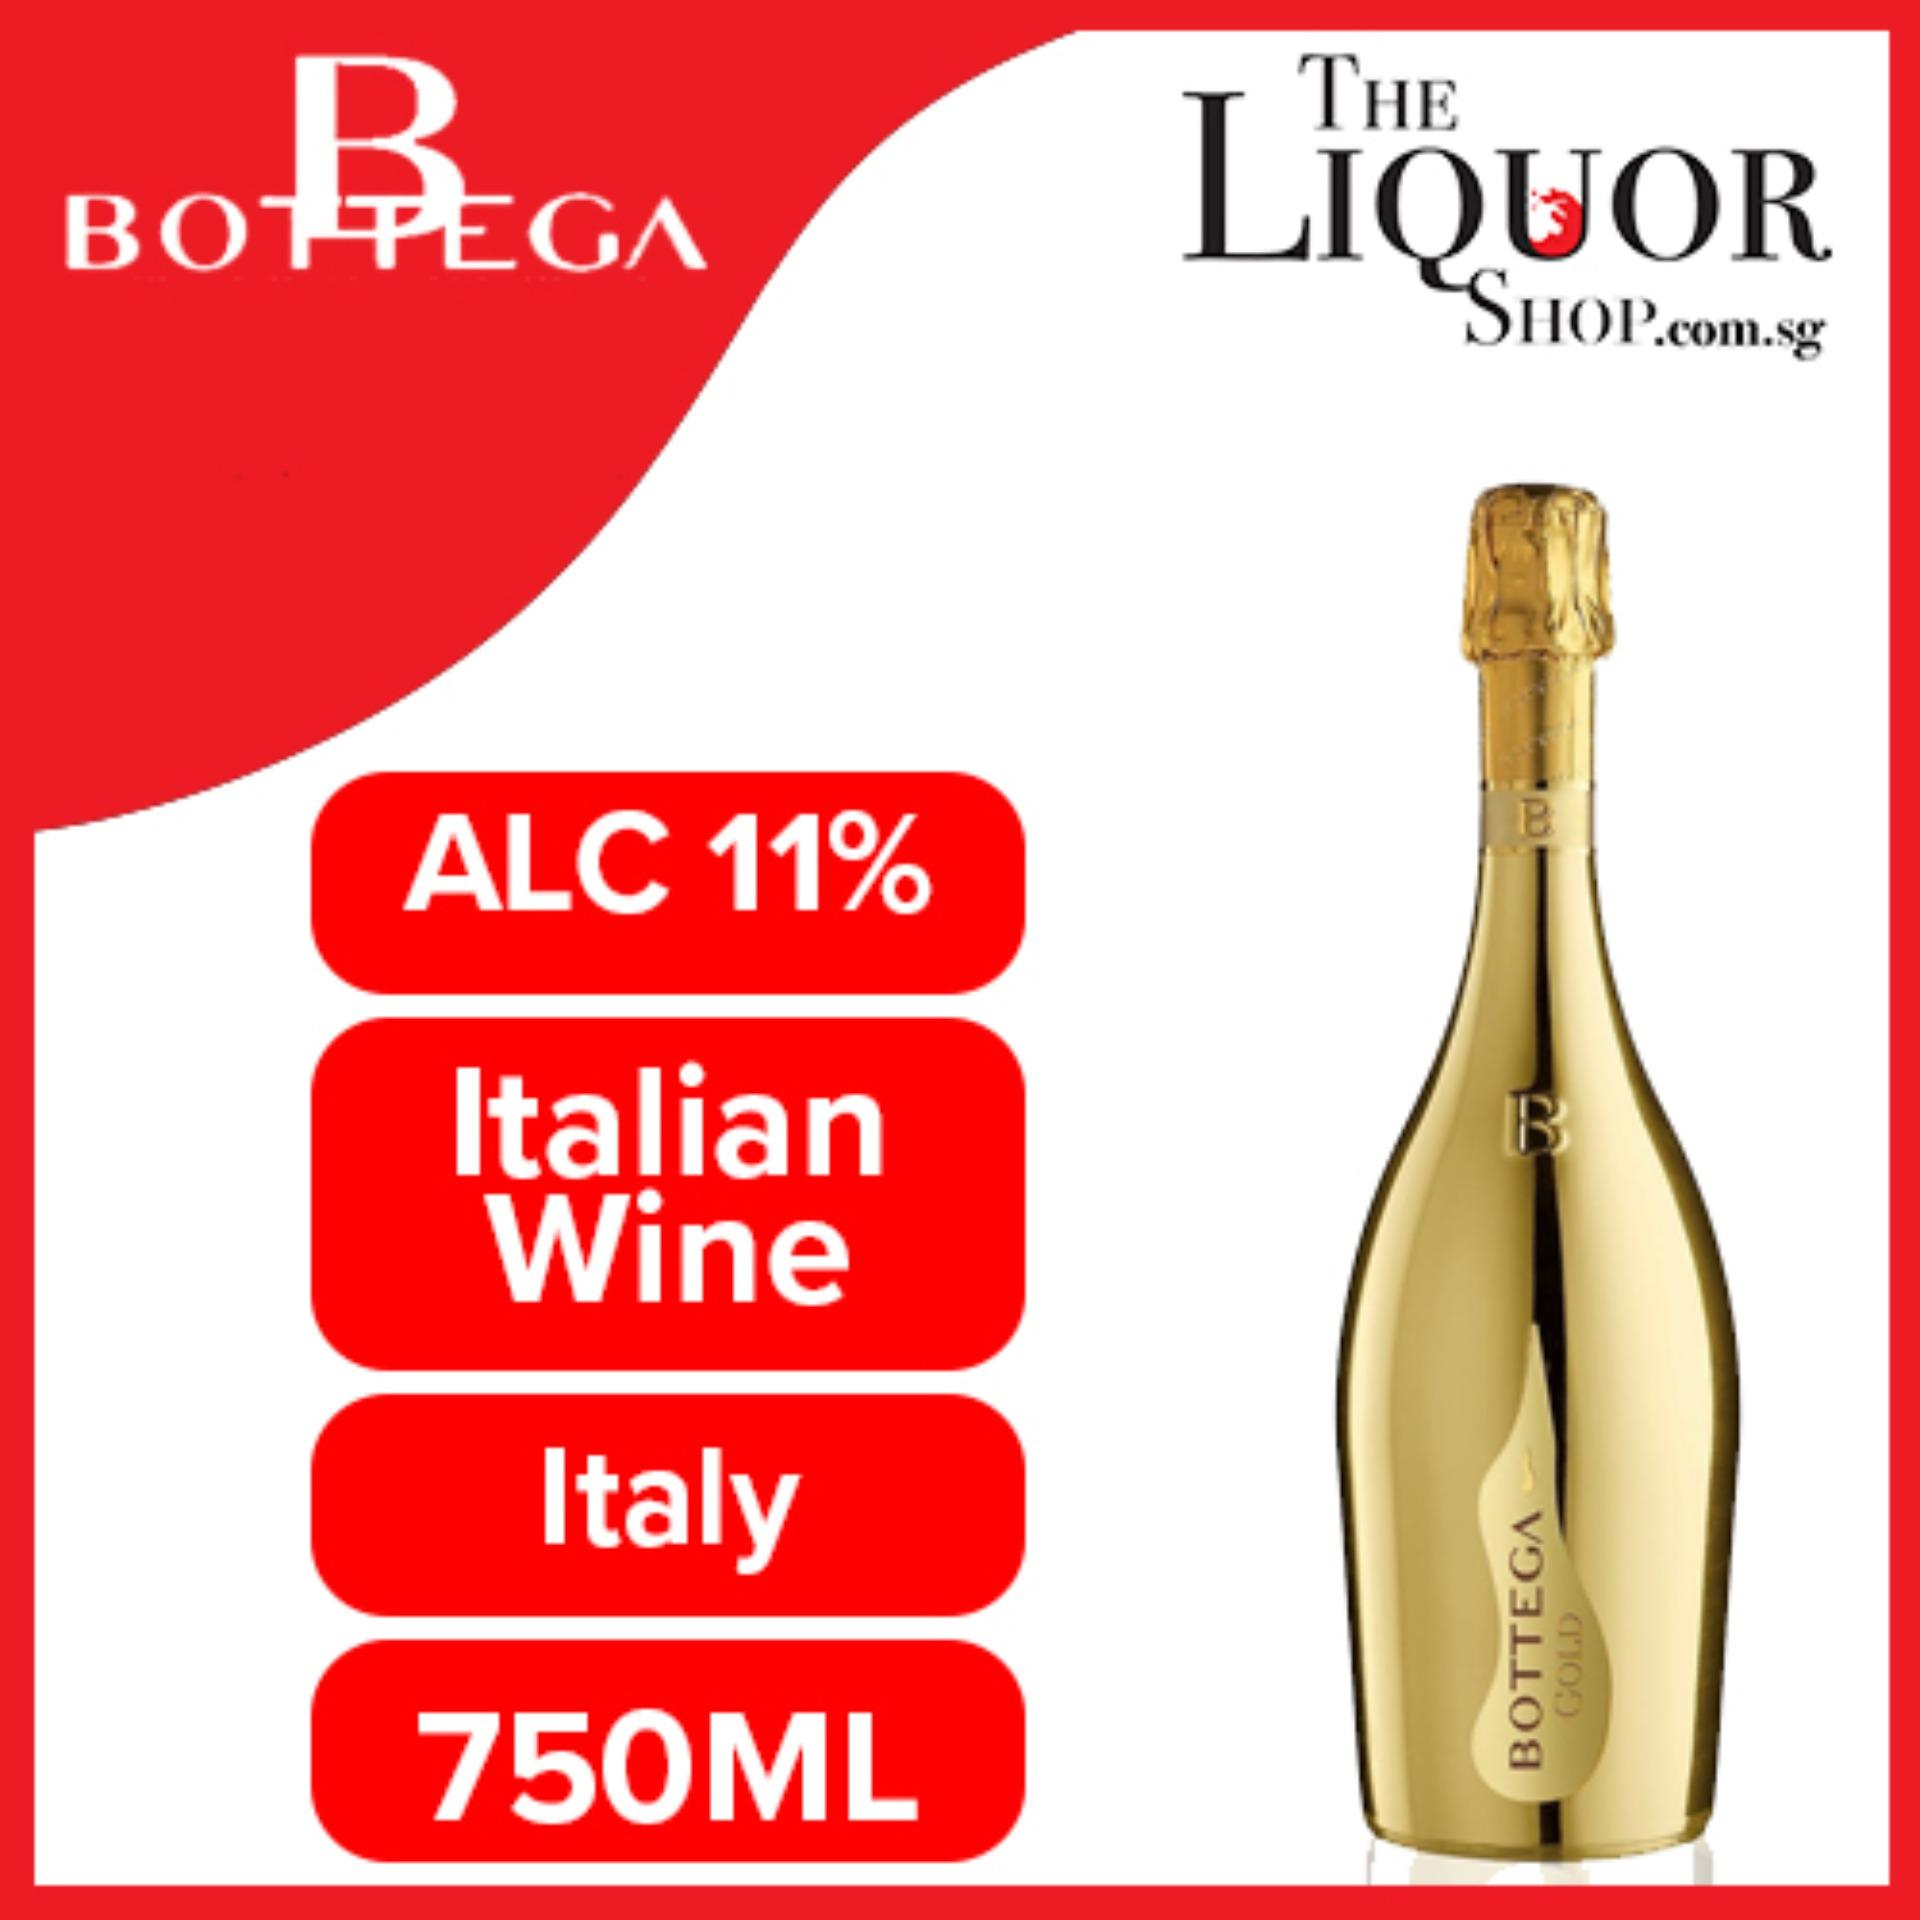 Bottega Gold Prosecco 750ml By The Liquor Shop.